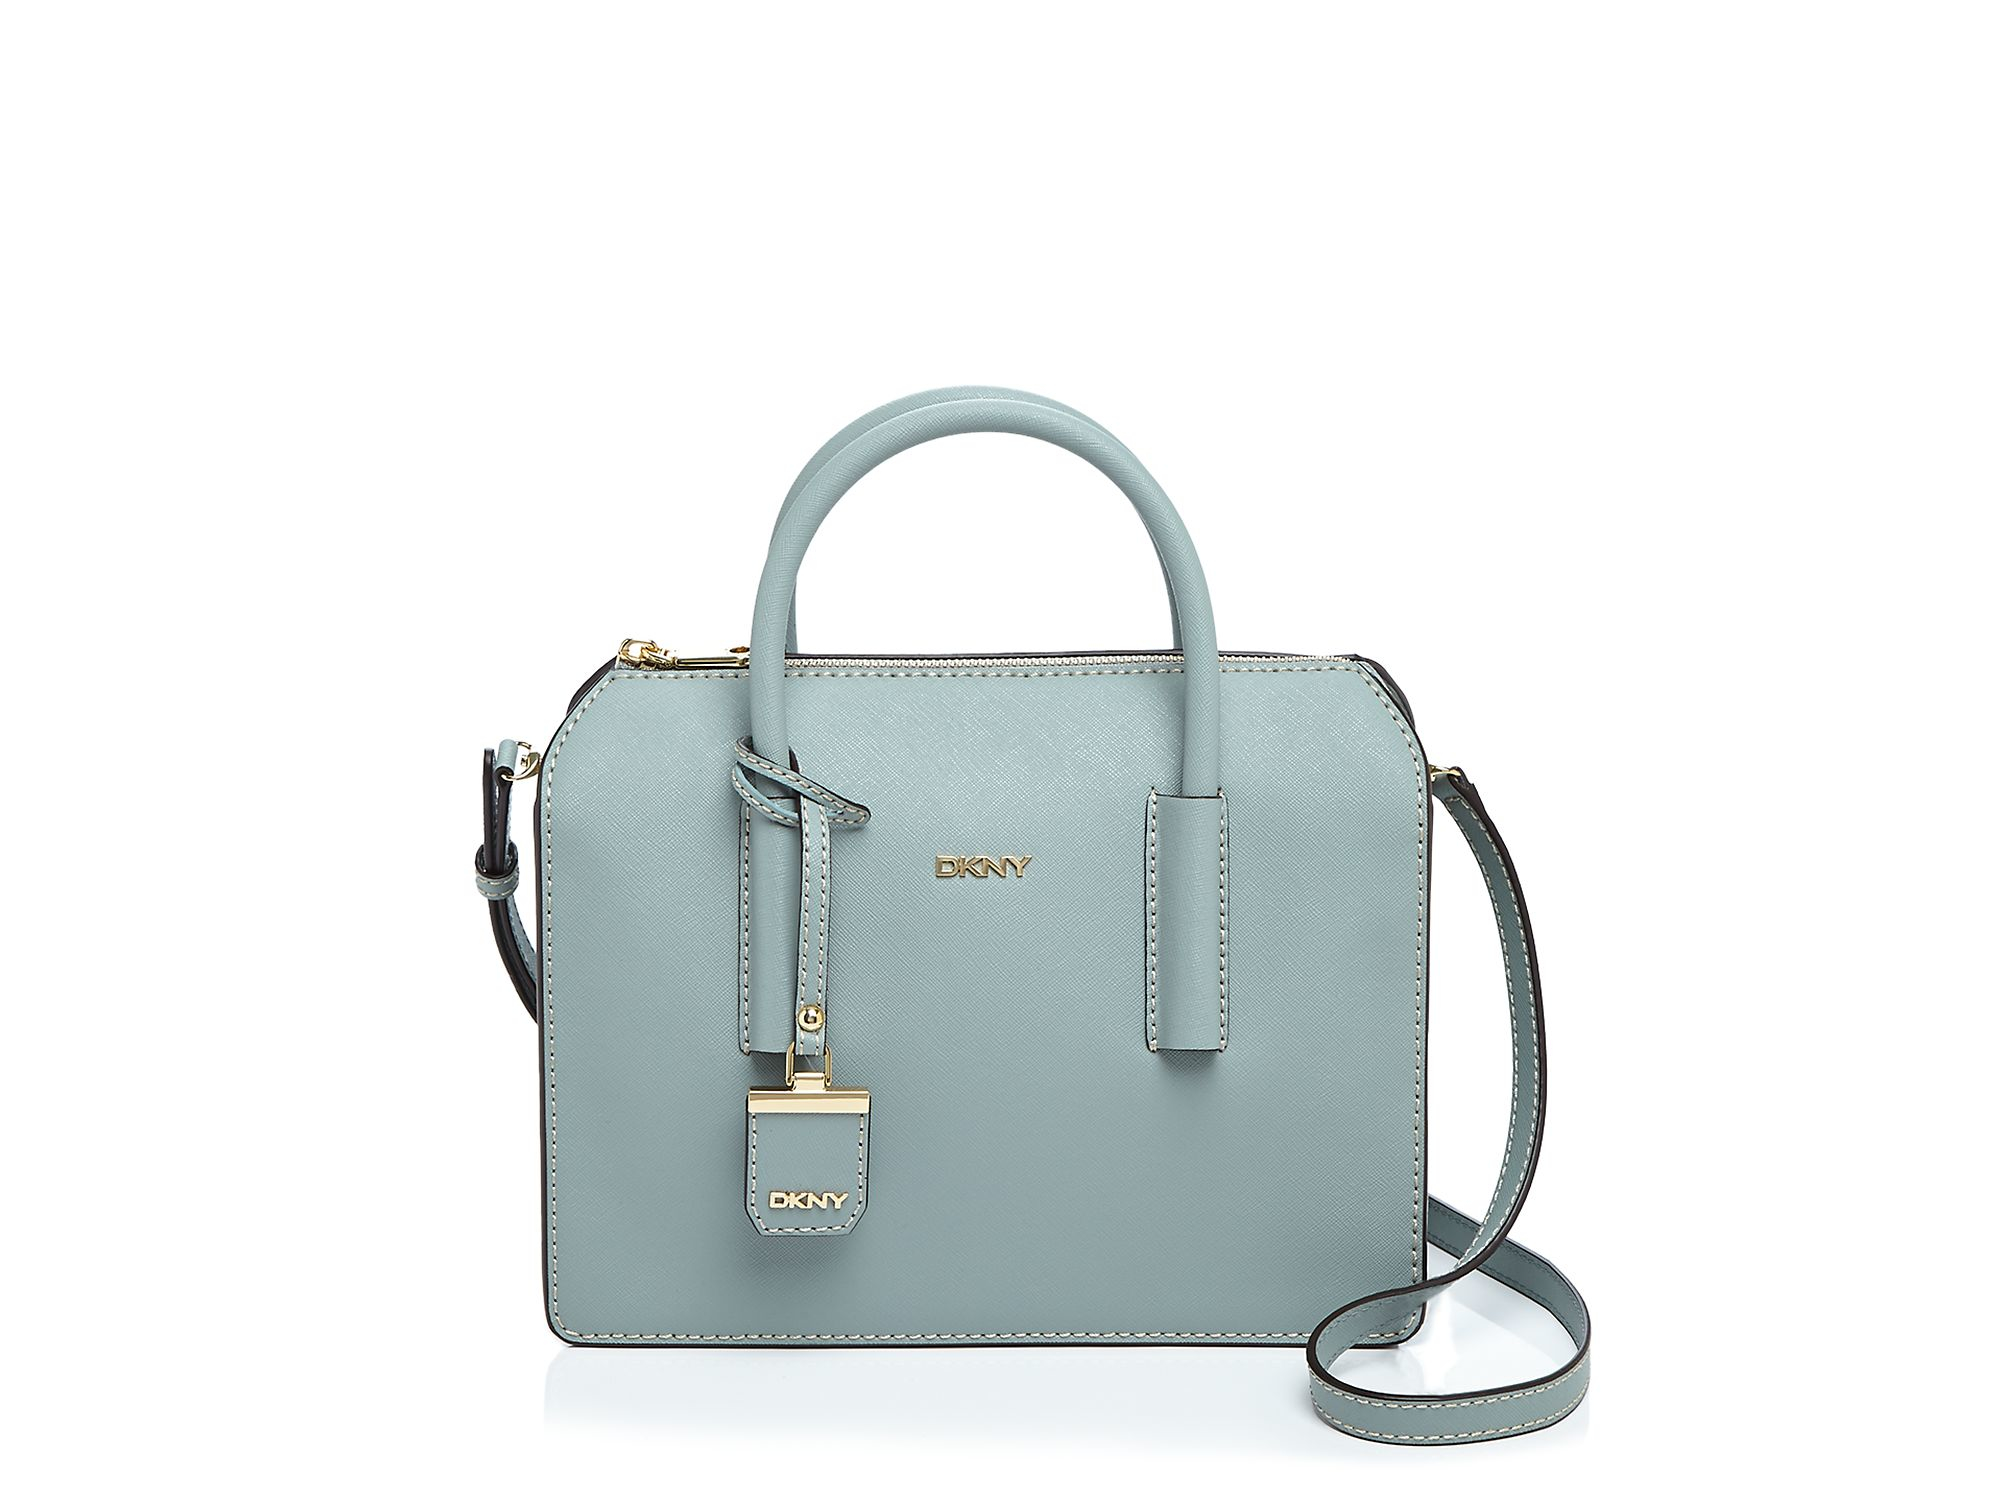 Dkny Bryant Park Saffiano Satchel in Blue | Lyst